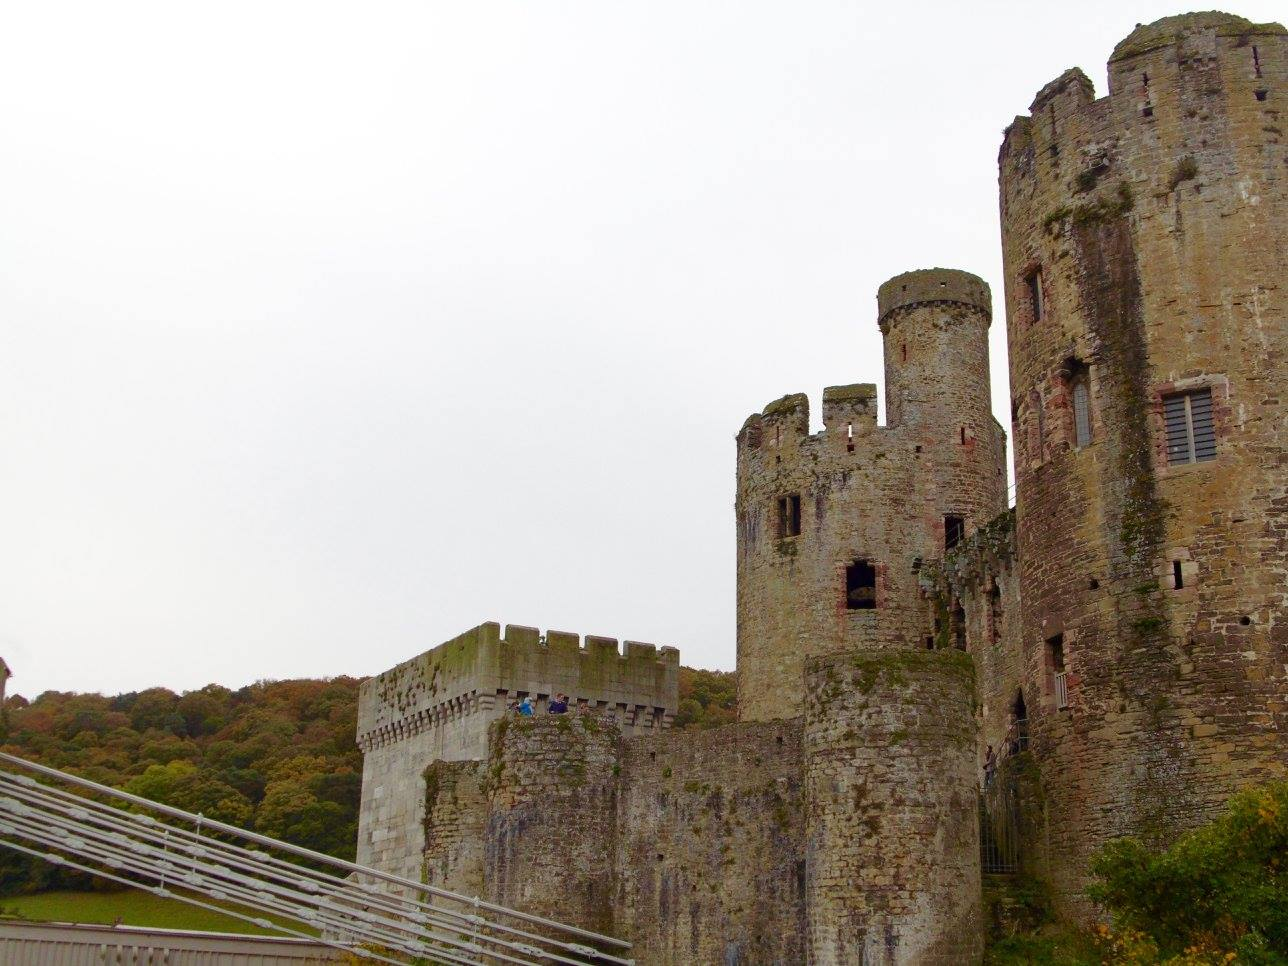 Conwy Castle, in Conwy, Wales